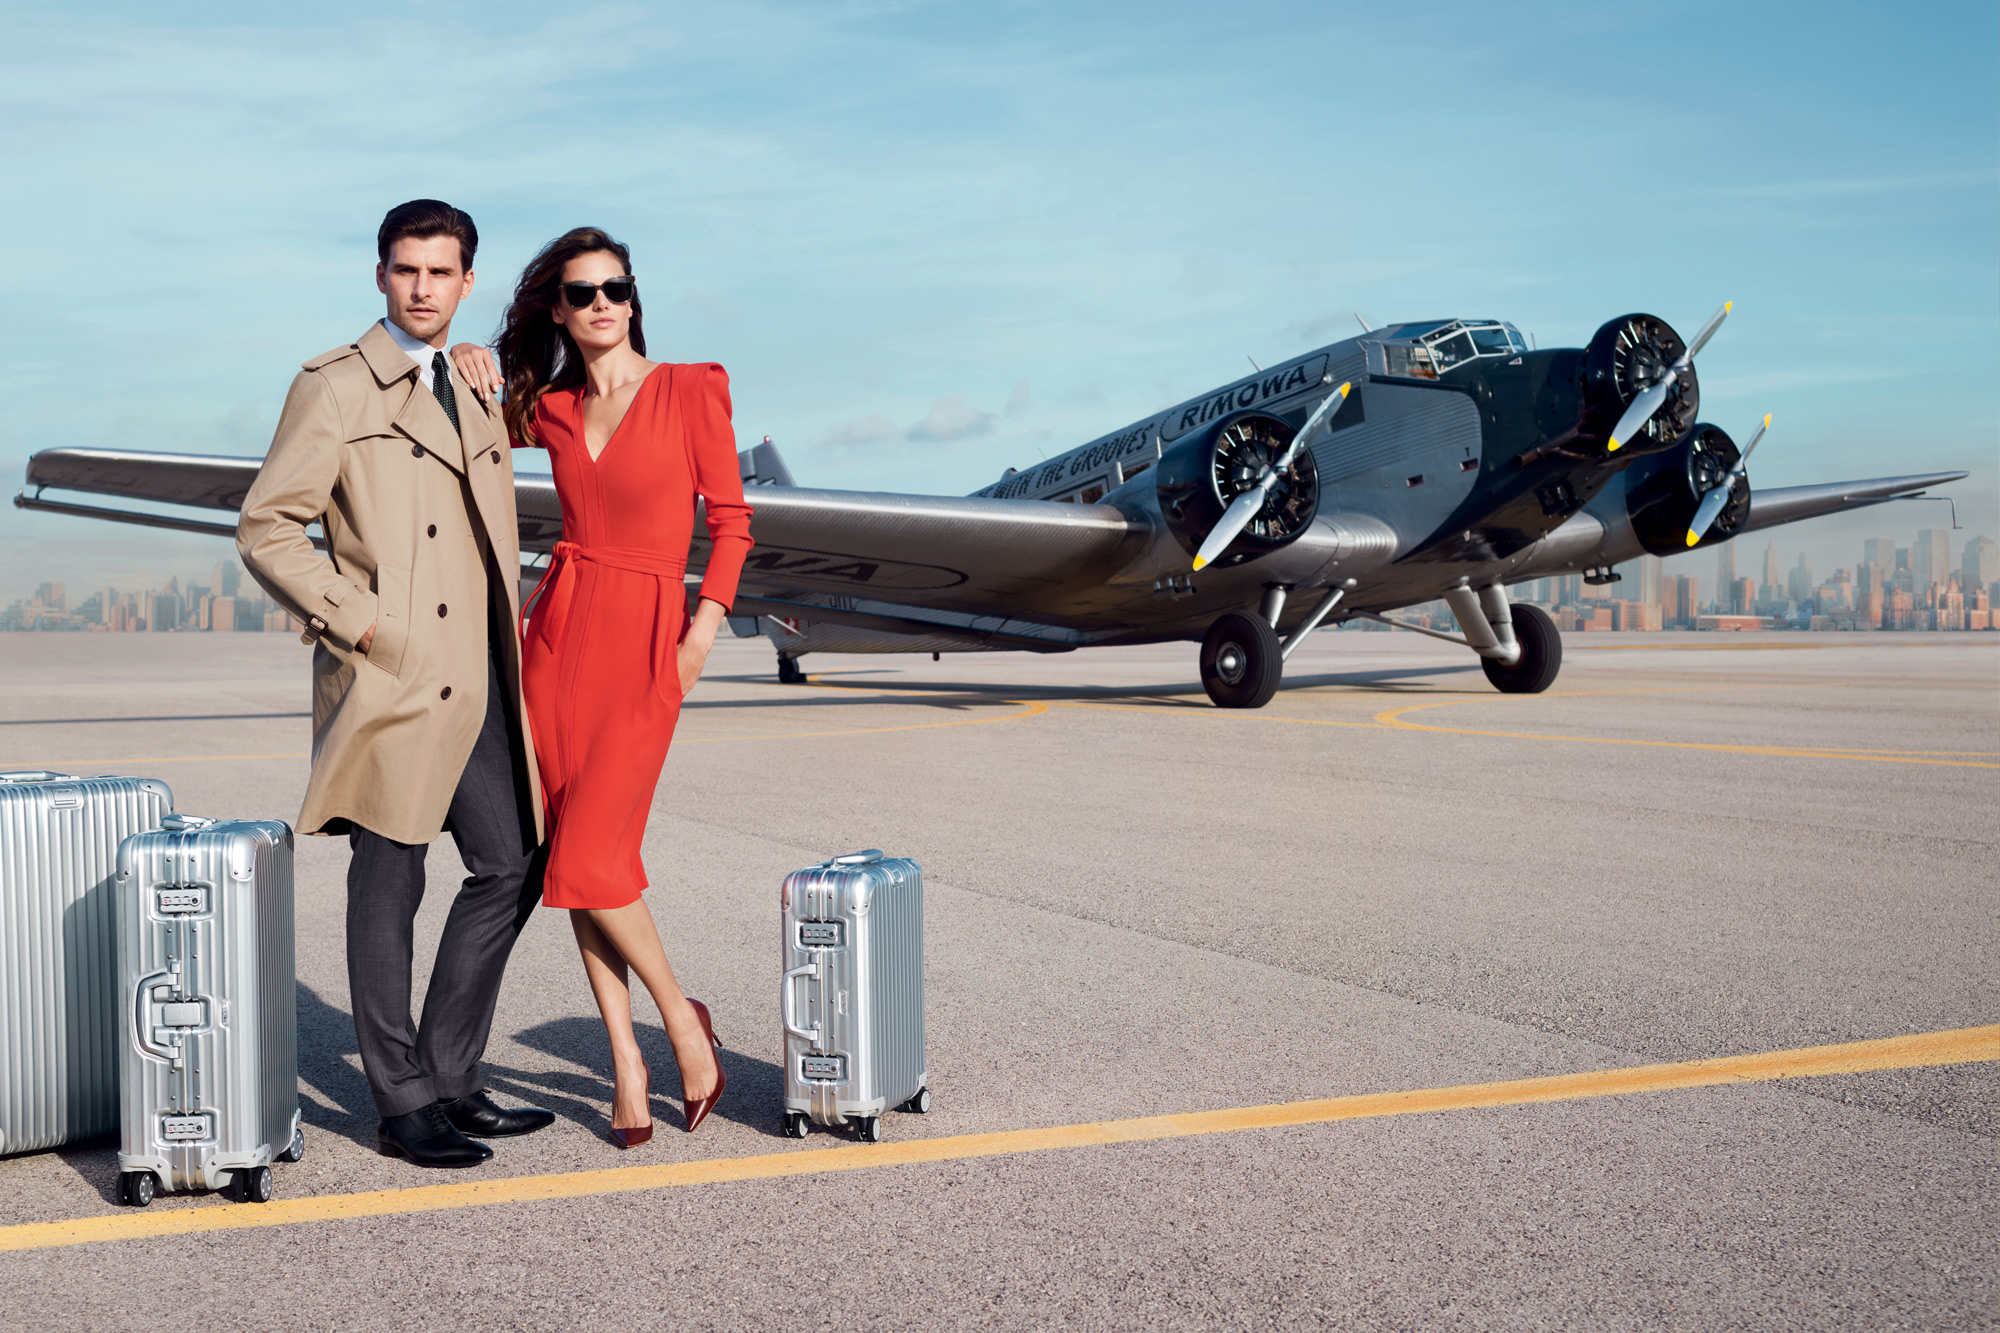 Rimowa. Travelling suitcases and luggage